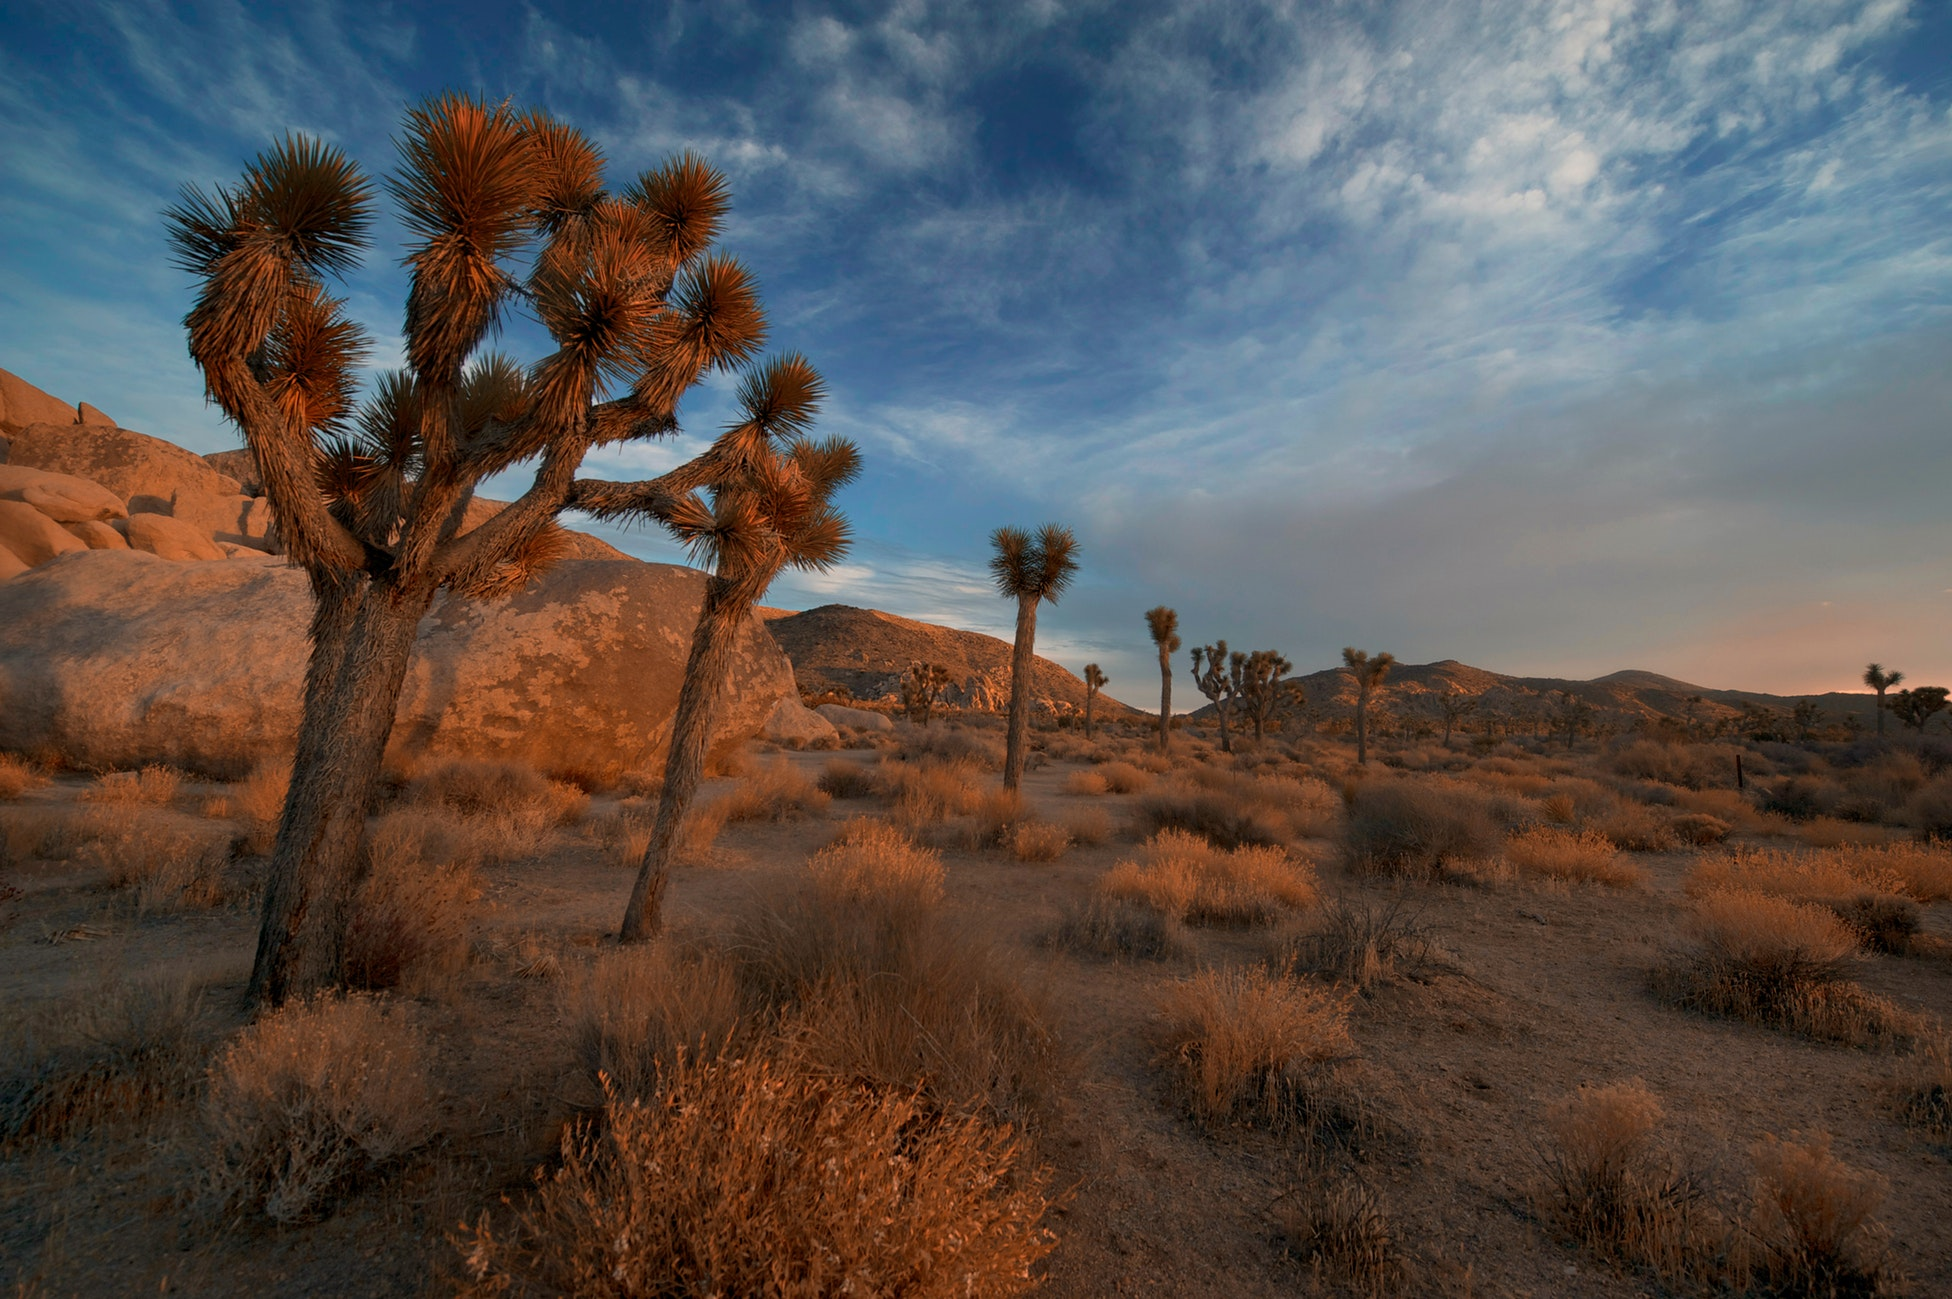 What to do in Joshua Tree? Enjoy the outdoors!